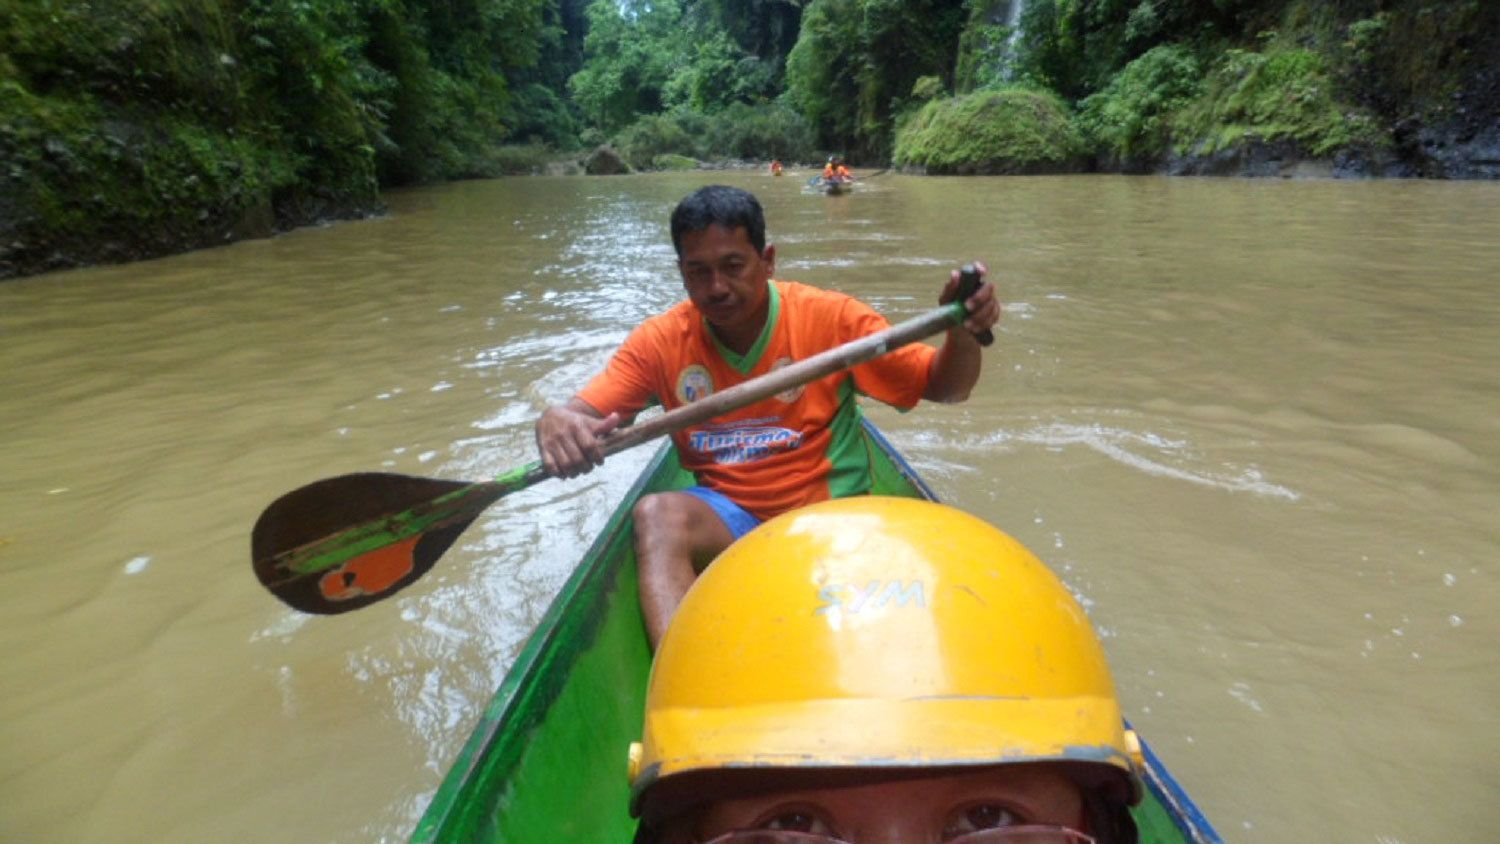 Canoe passengers travel down the river in Pagsanjan